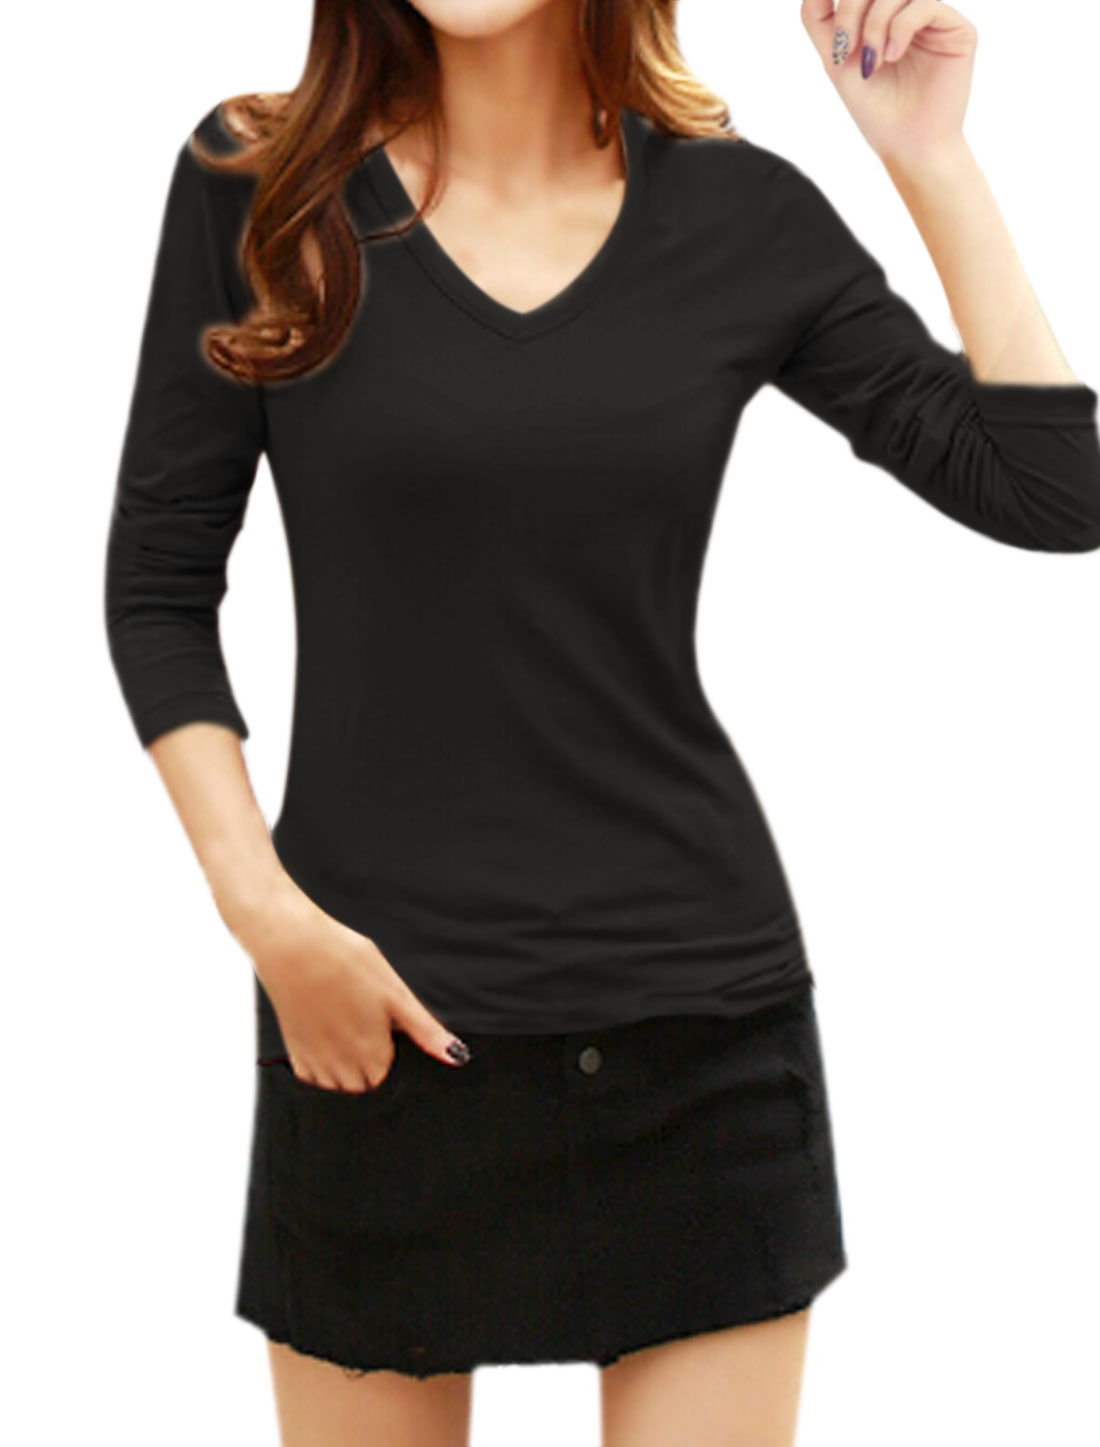 Ladies Long Sleeves V Neckline Slim Fit Tee Shirt Black S